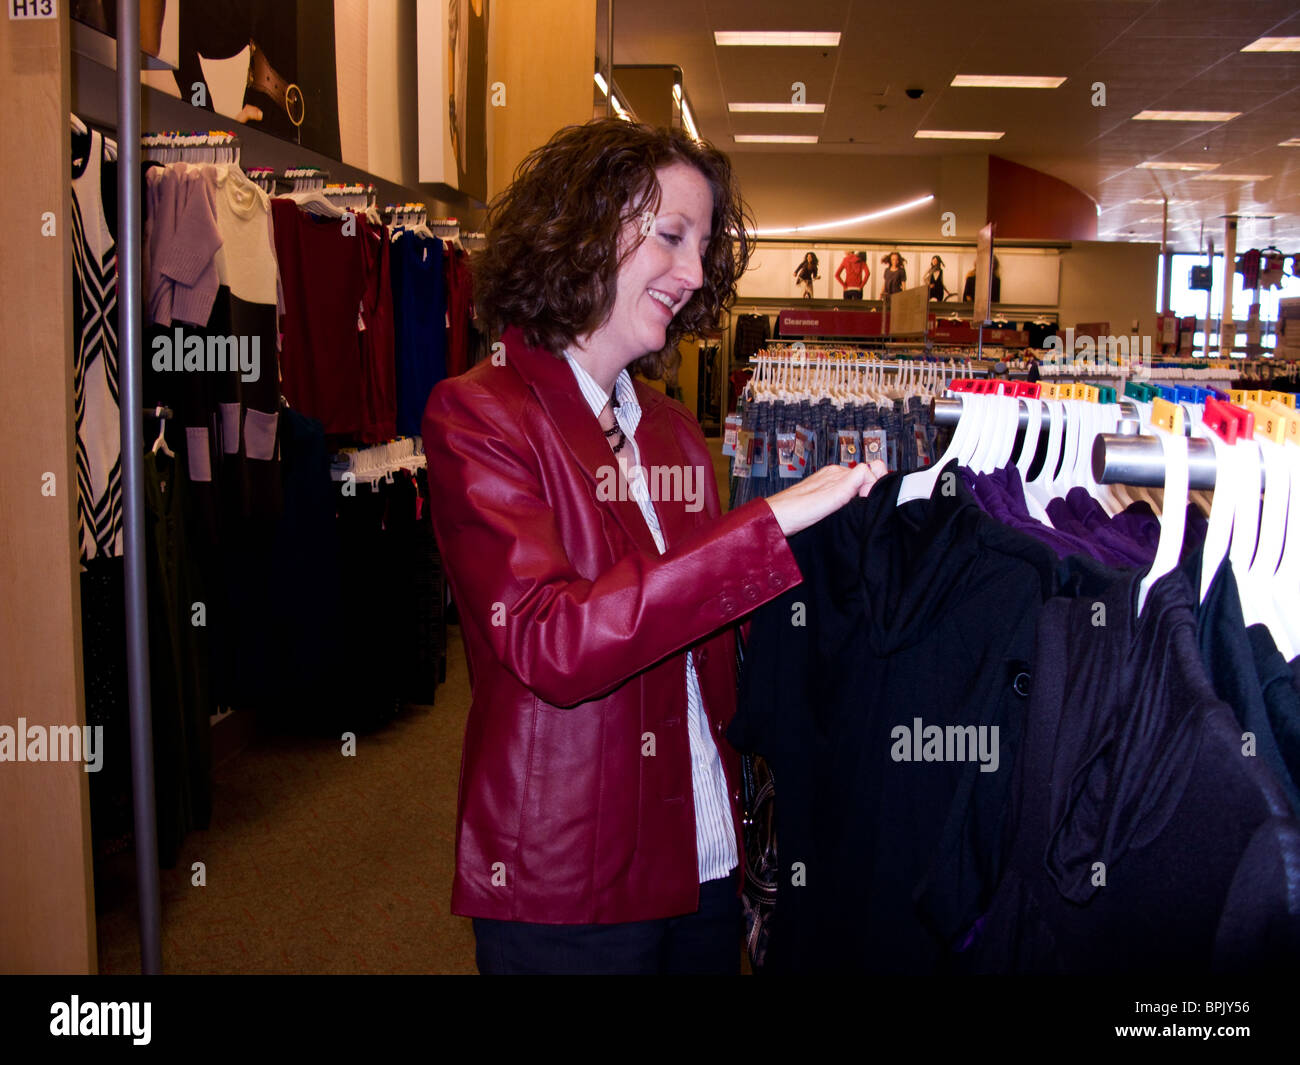 Clothing stores in okc